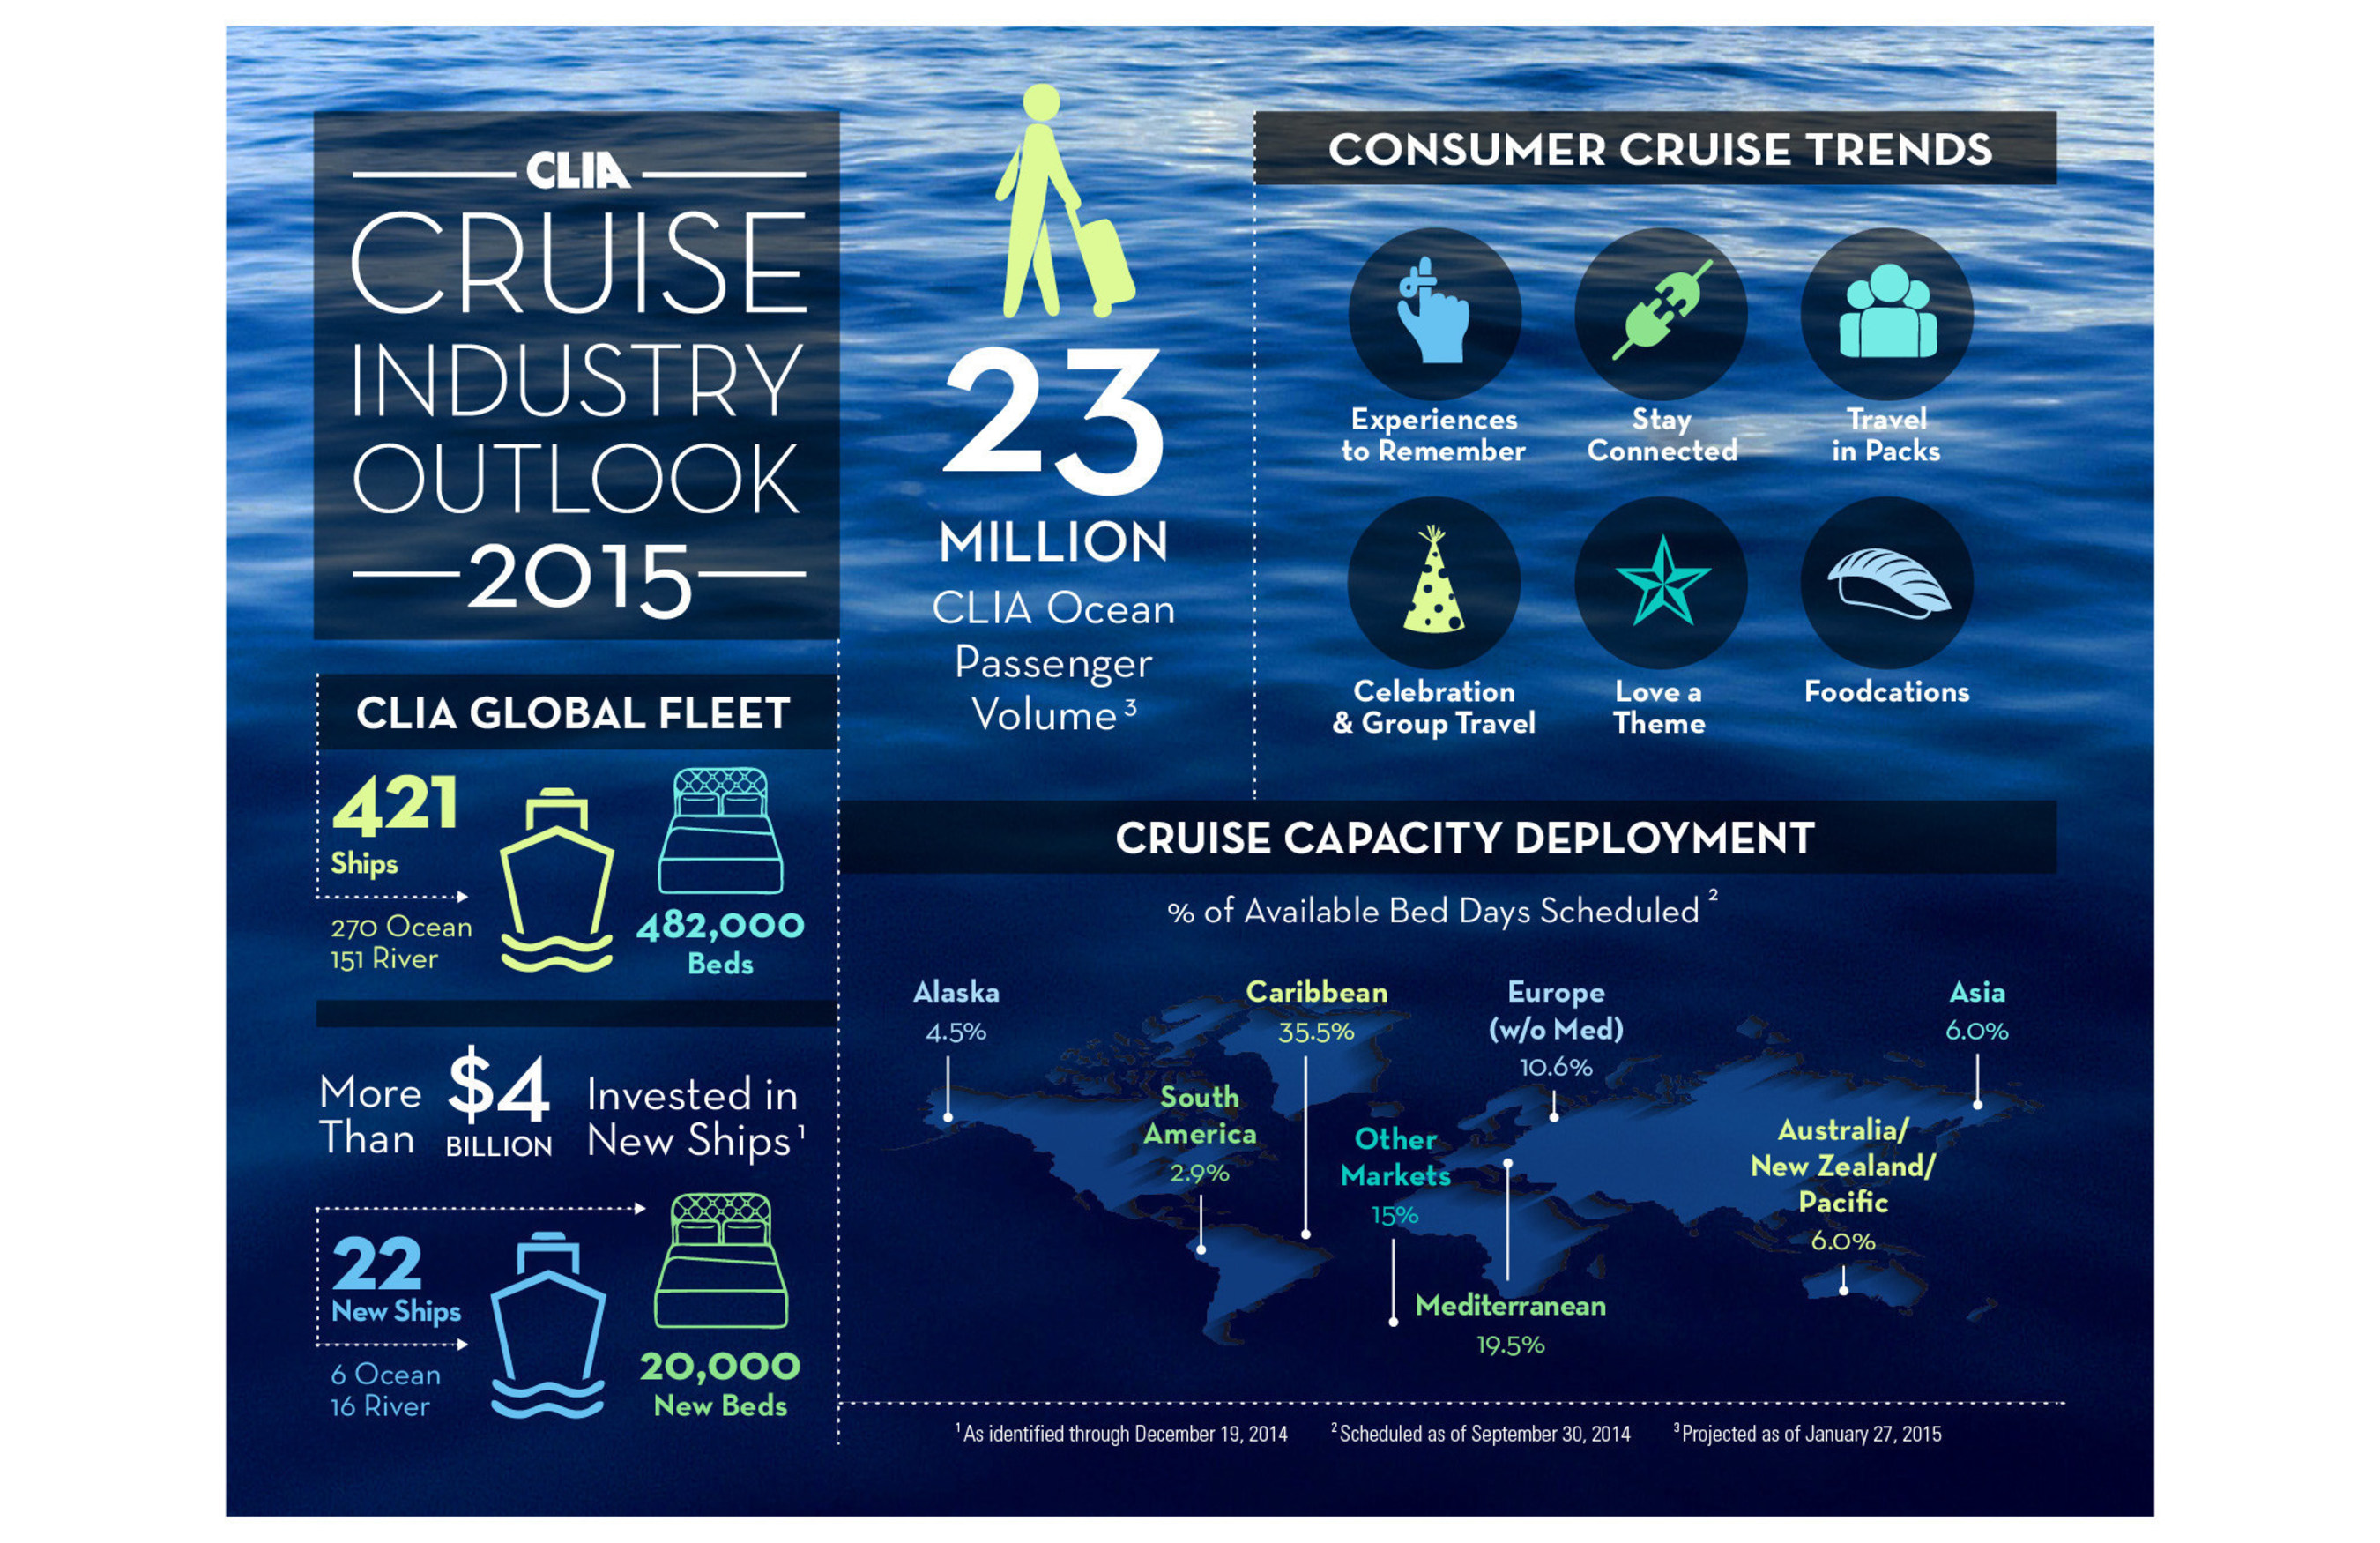 2015 Cruise Industry Outlook